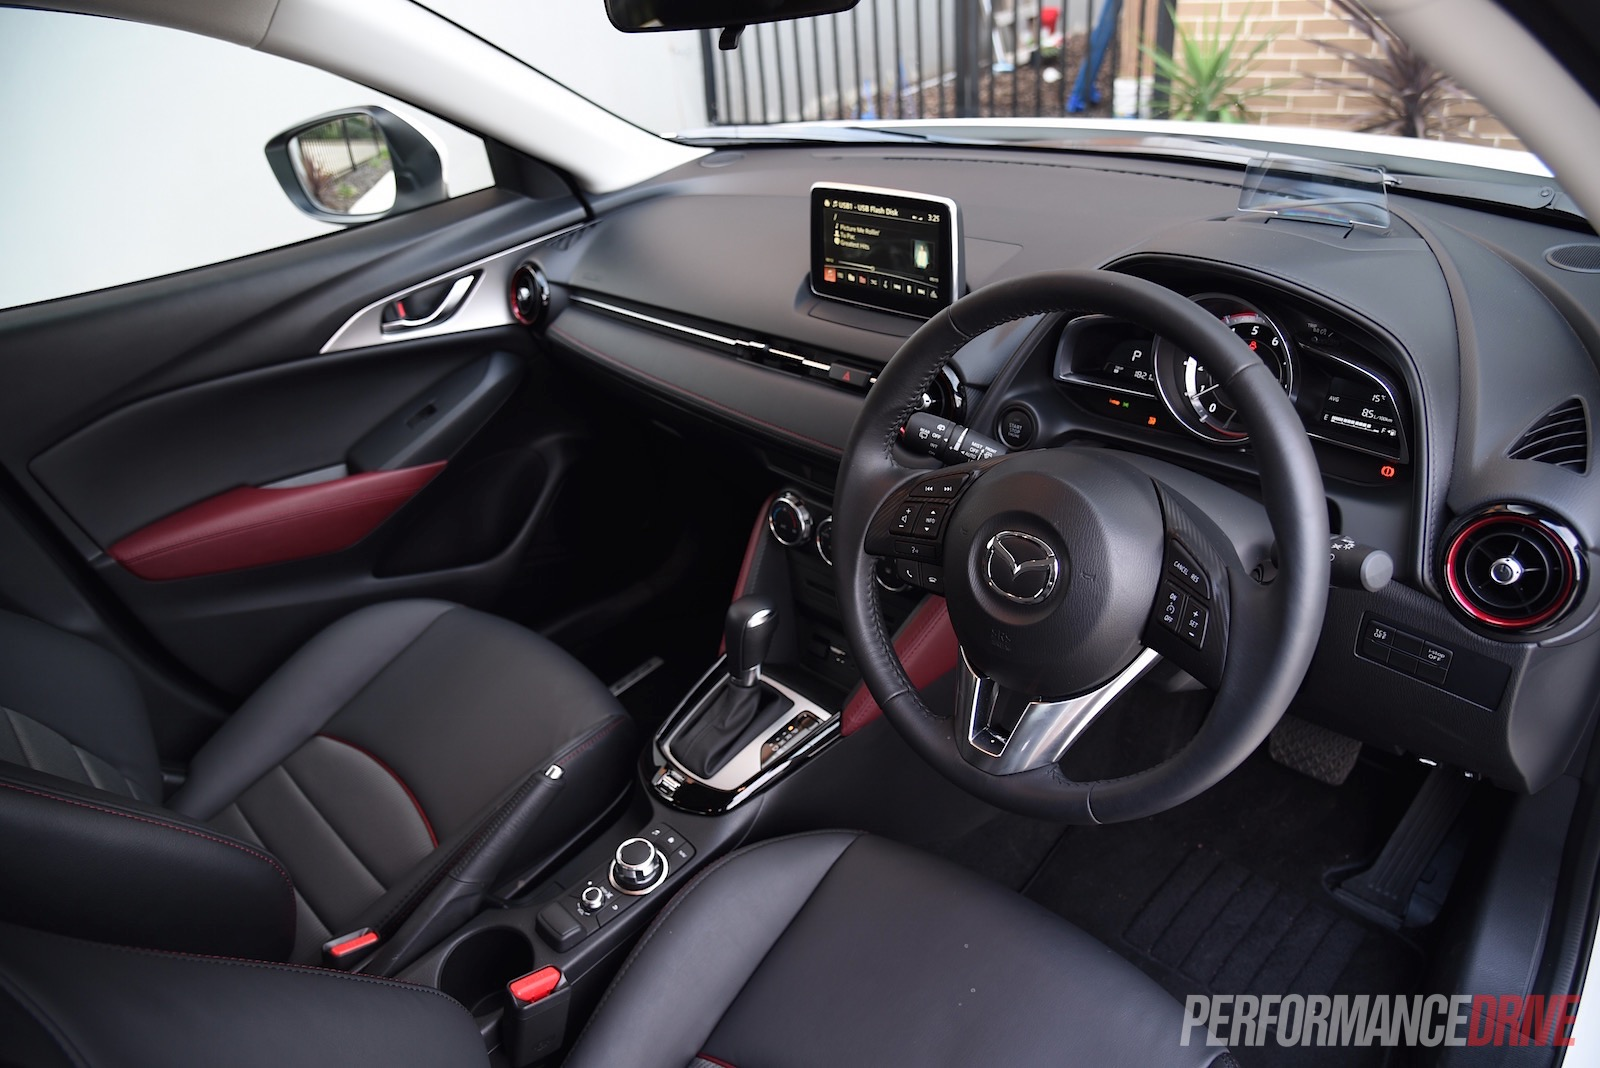 mazda cx 3 interior images galleries with a bite. Black Bedroom Furniture Sets. Home Design Ideas